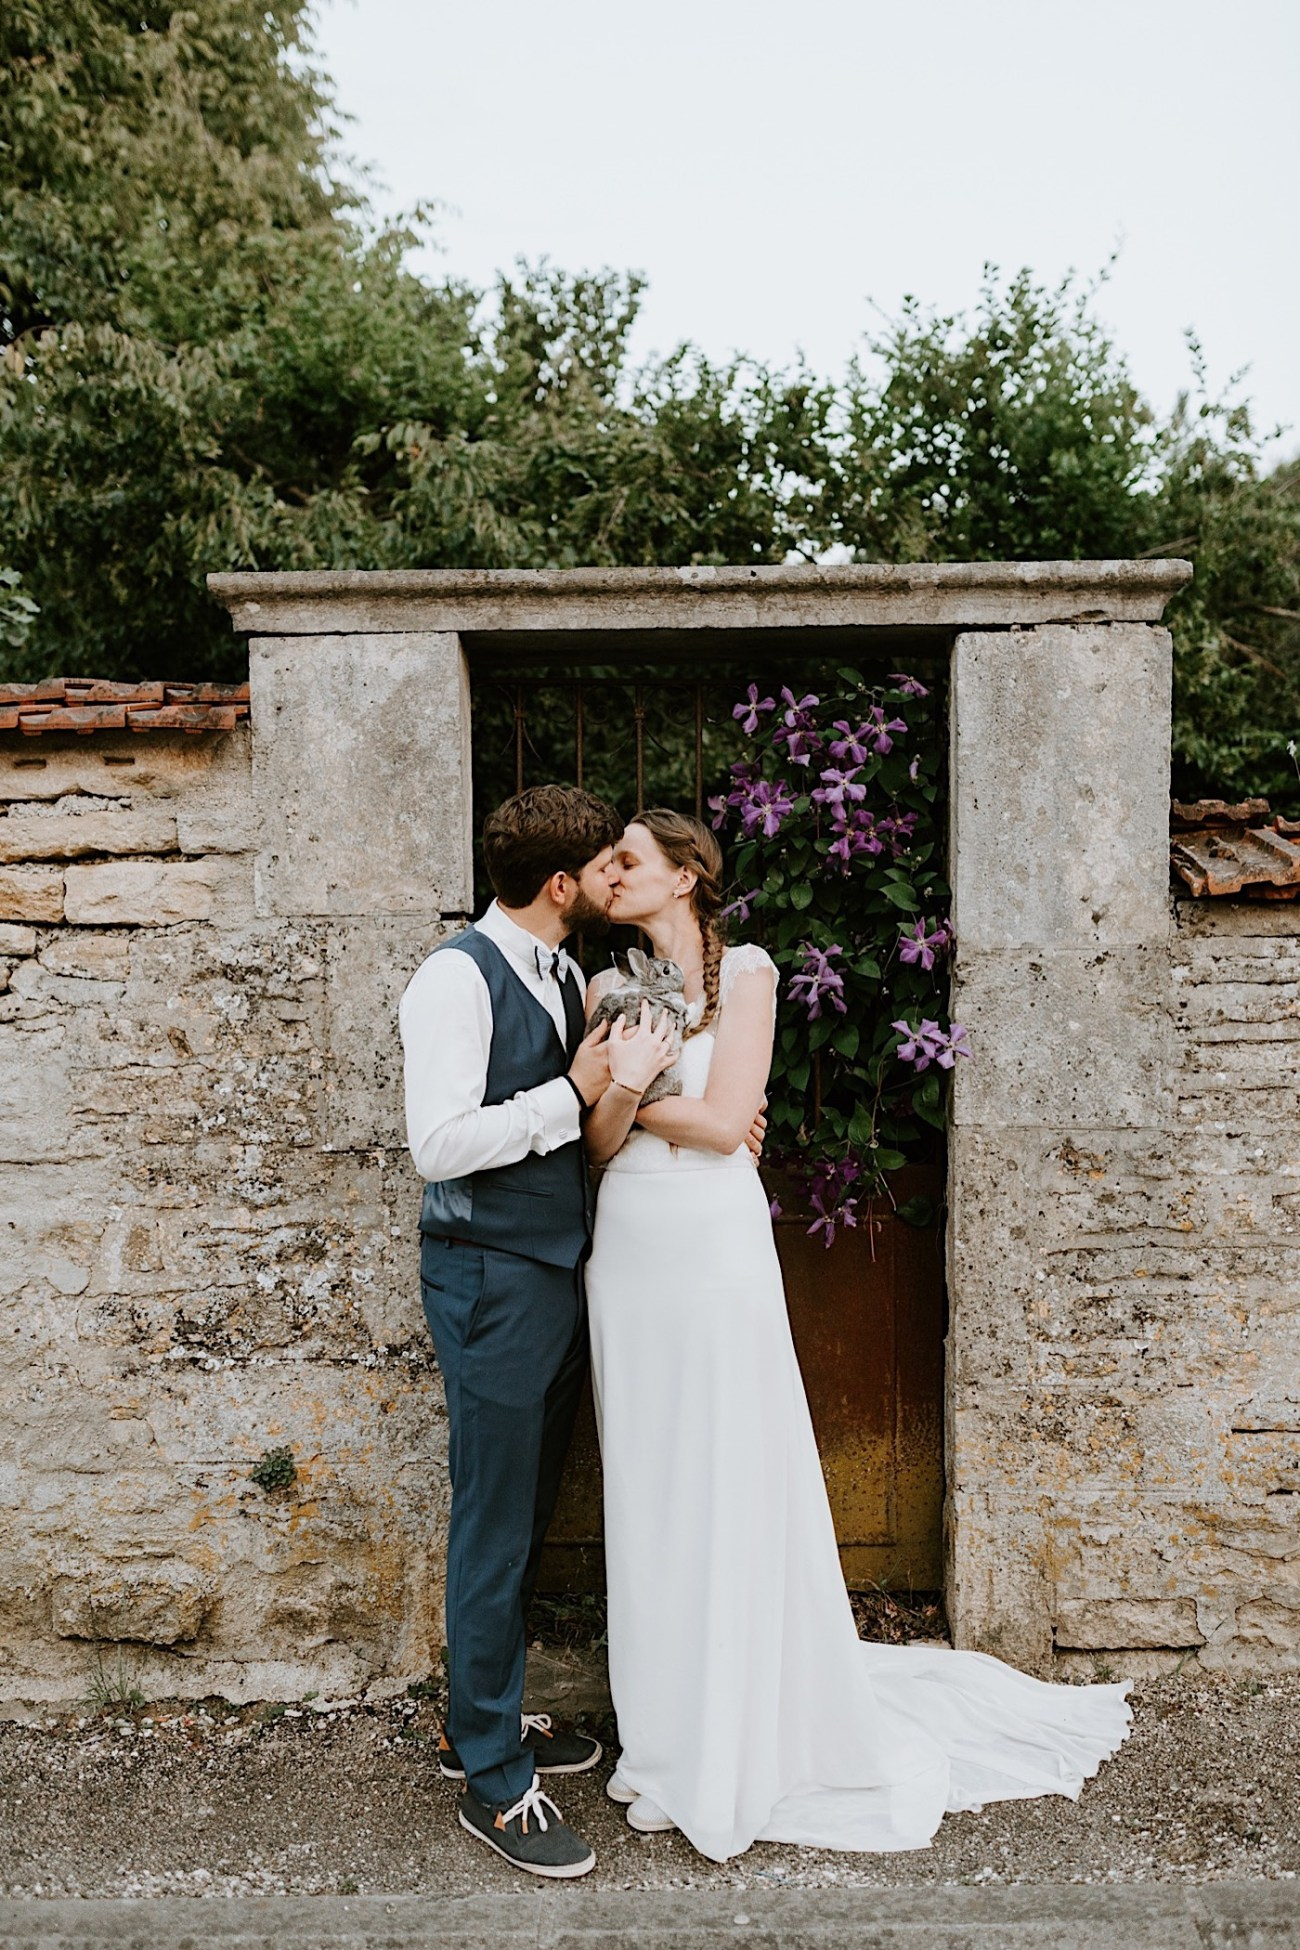 French Rural Wedding After Wedding Day Photos Paris Wedding Photographer 018